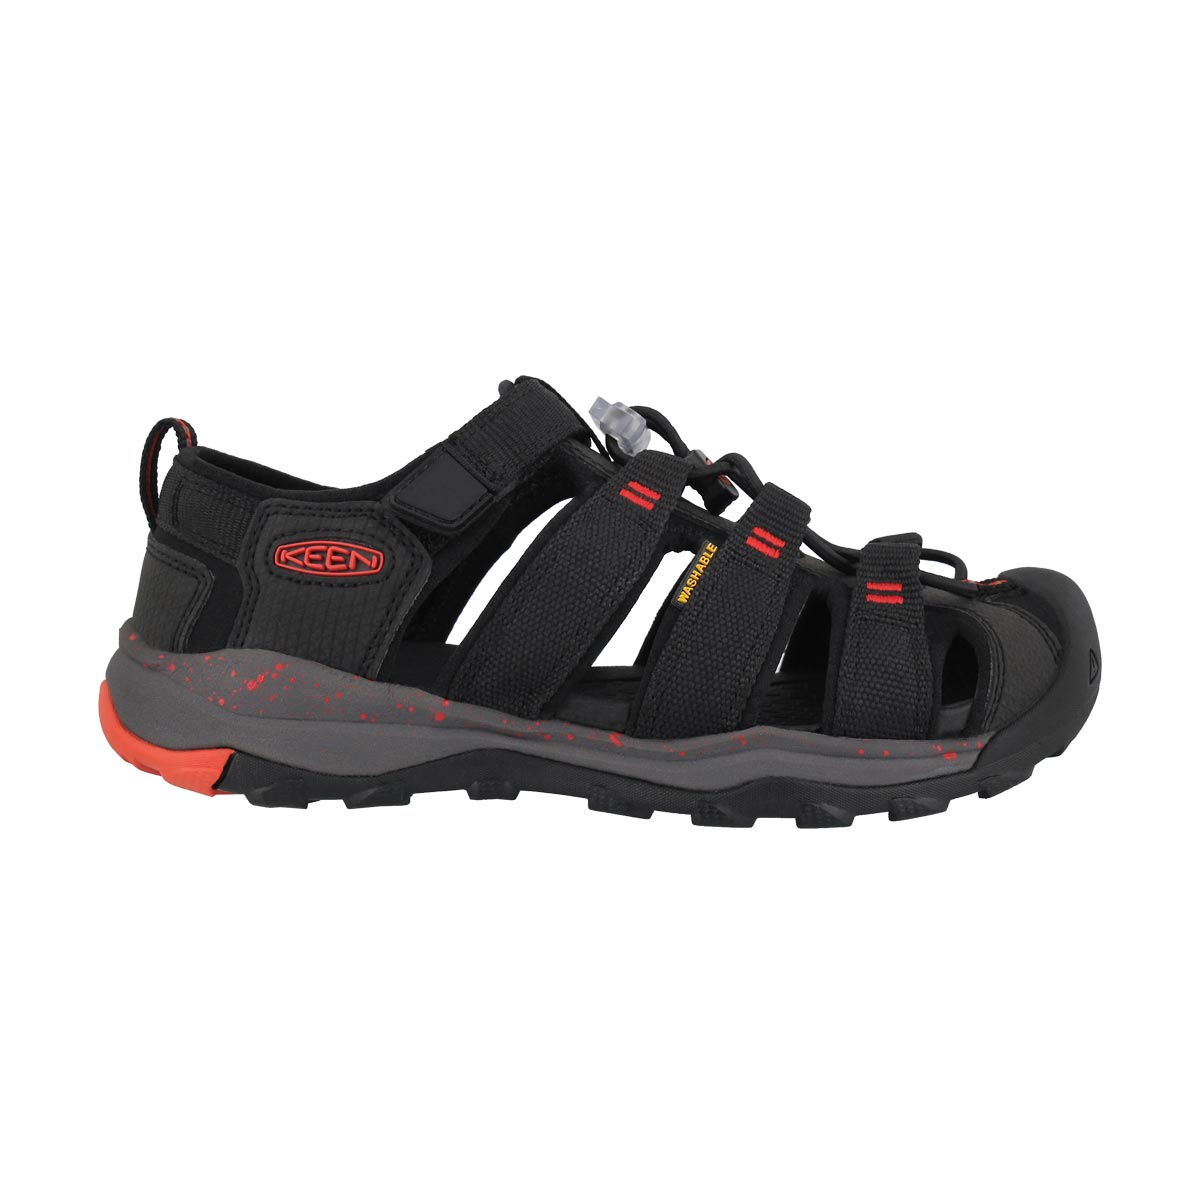 Bys Newport Neo H2 blk/firey red sndl